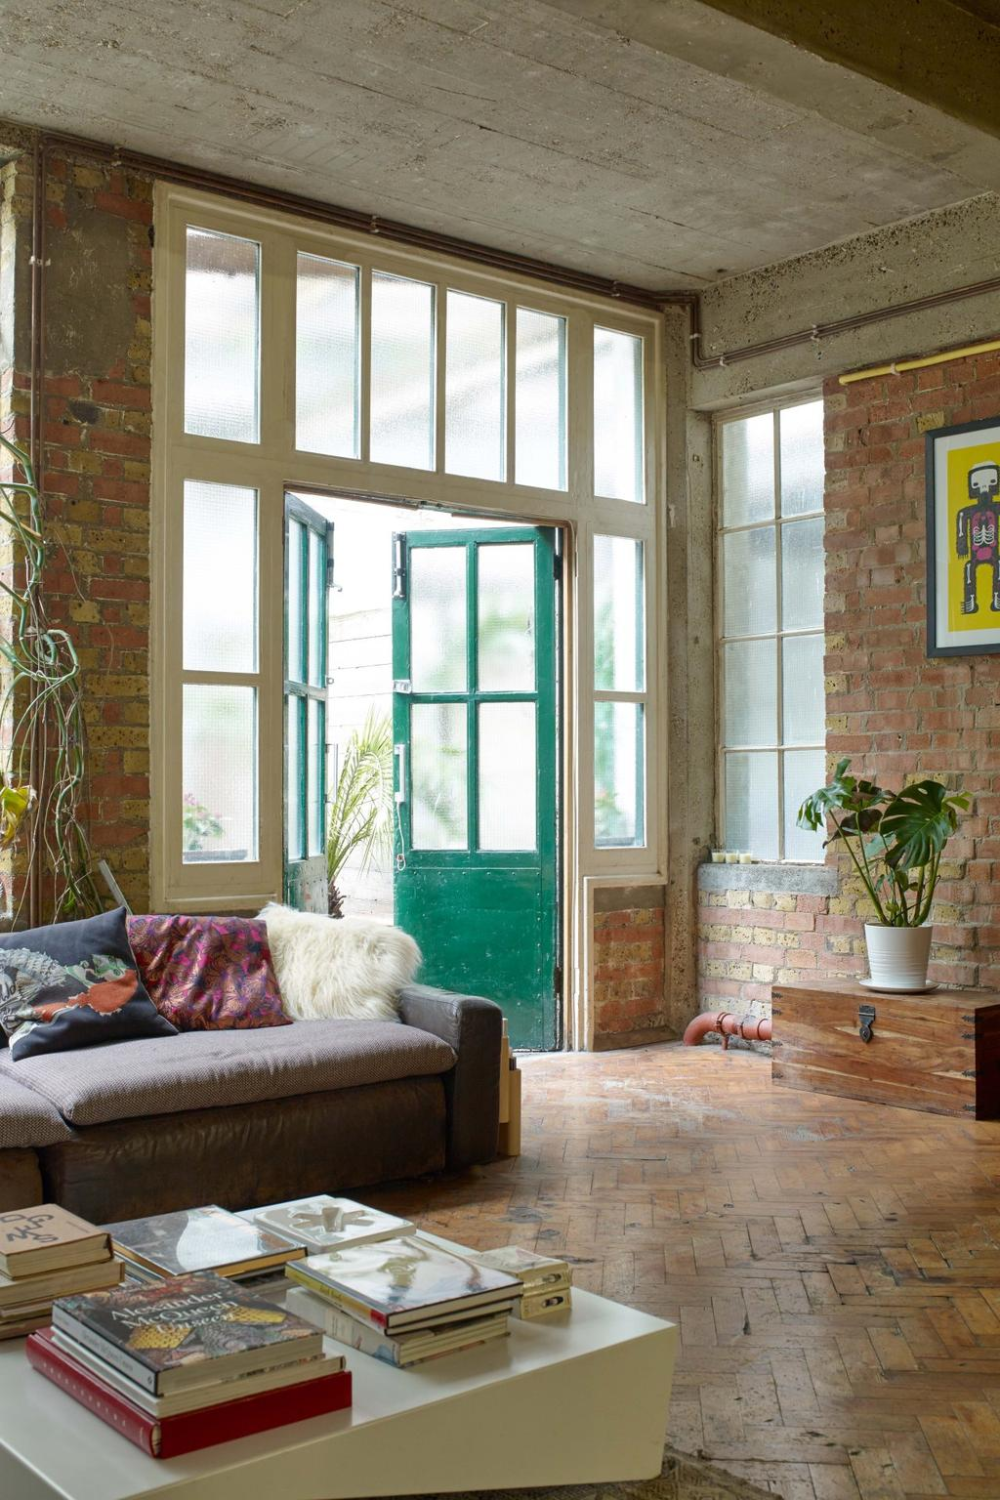 House tour: a renovated 1930s factory in east London now ...